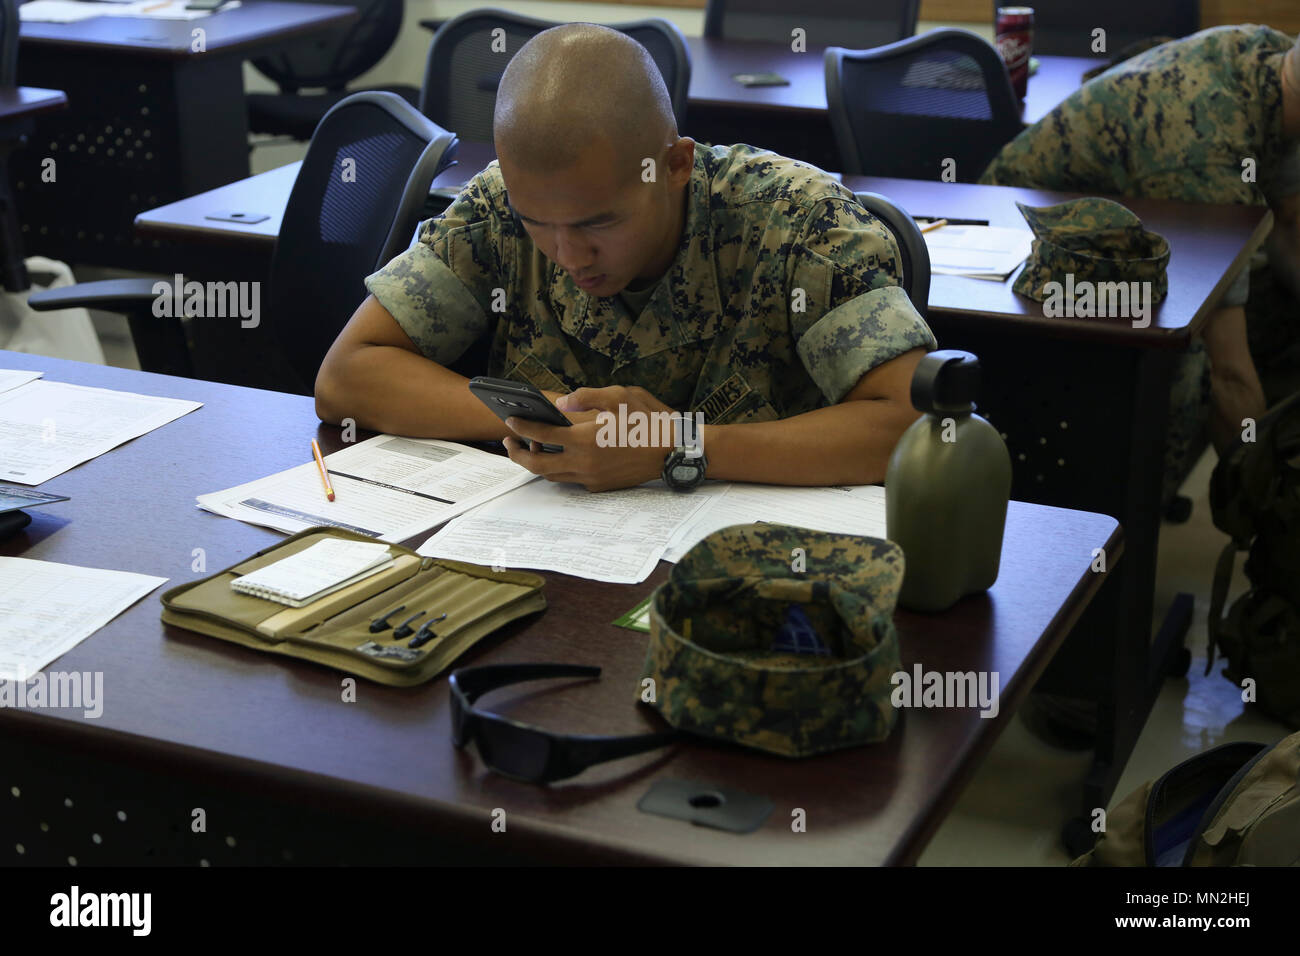 Camp Foster Okinawa Japan Lance Cpl Michael Li Calculates His Monthly Spending During A